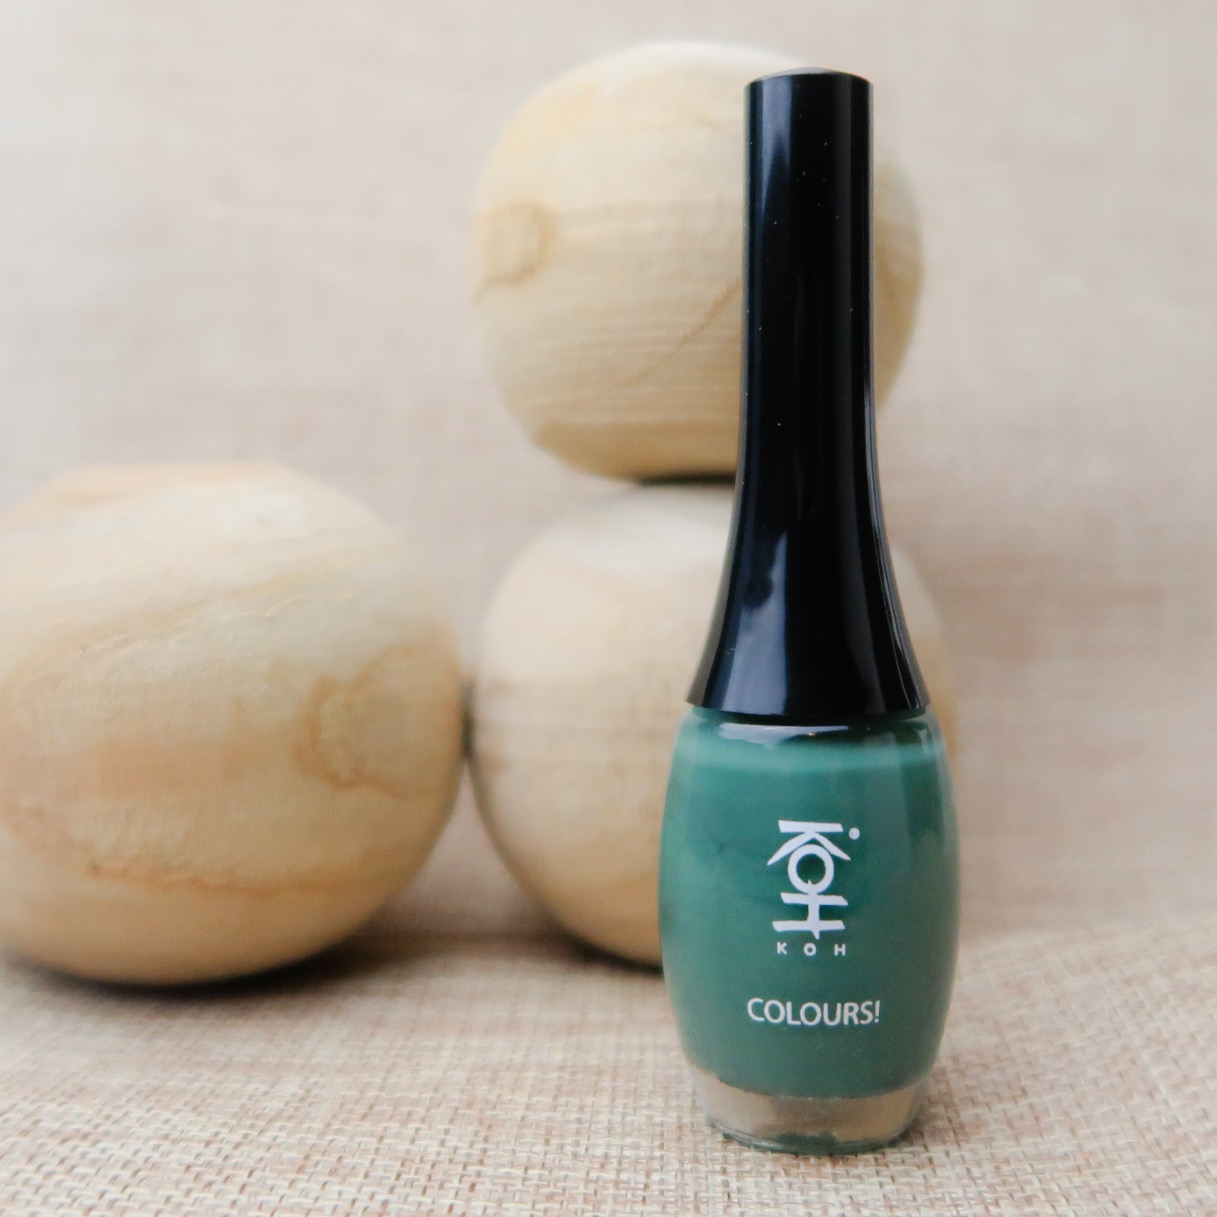 Swatched-it | Woodstock green